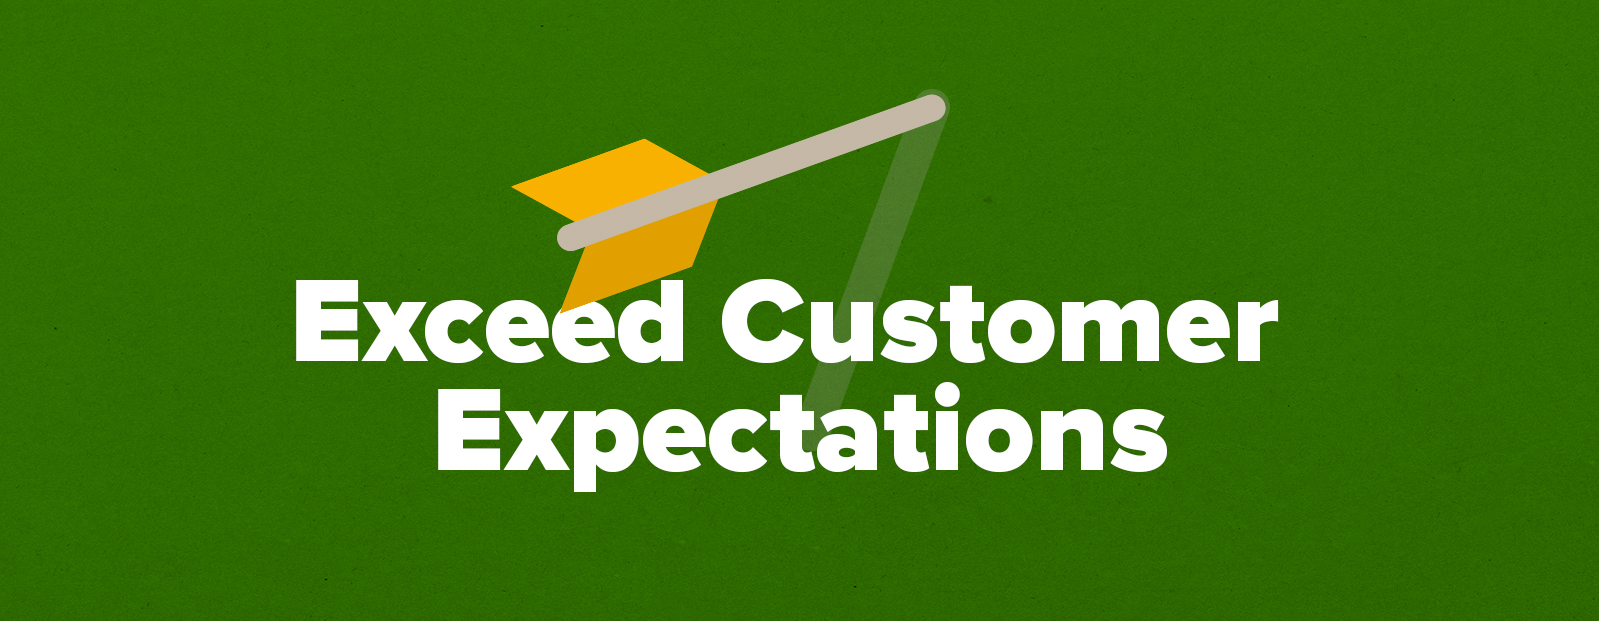 customer needs and expectations When it comes to understanding customer needs and expectations, are you  thinking the thoughts, feeling the feelings and speaking the words.